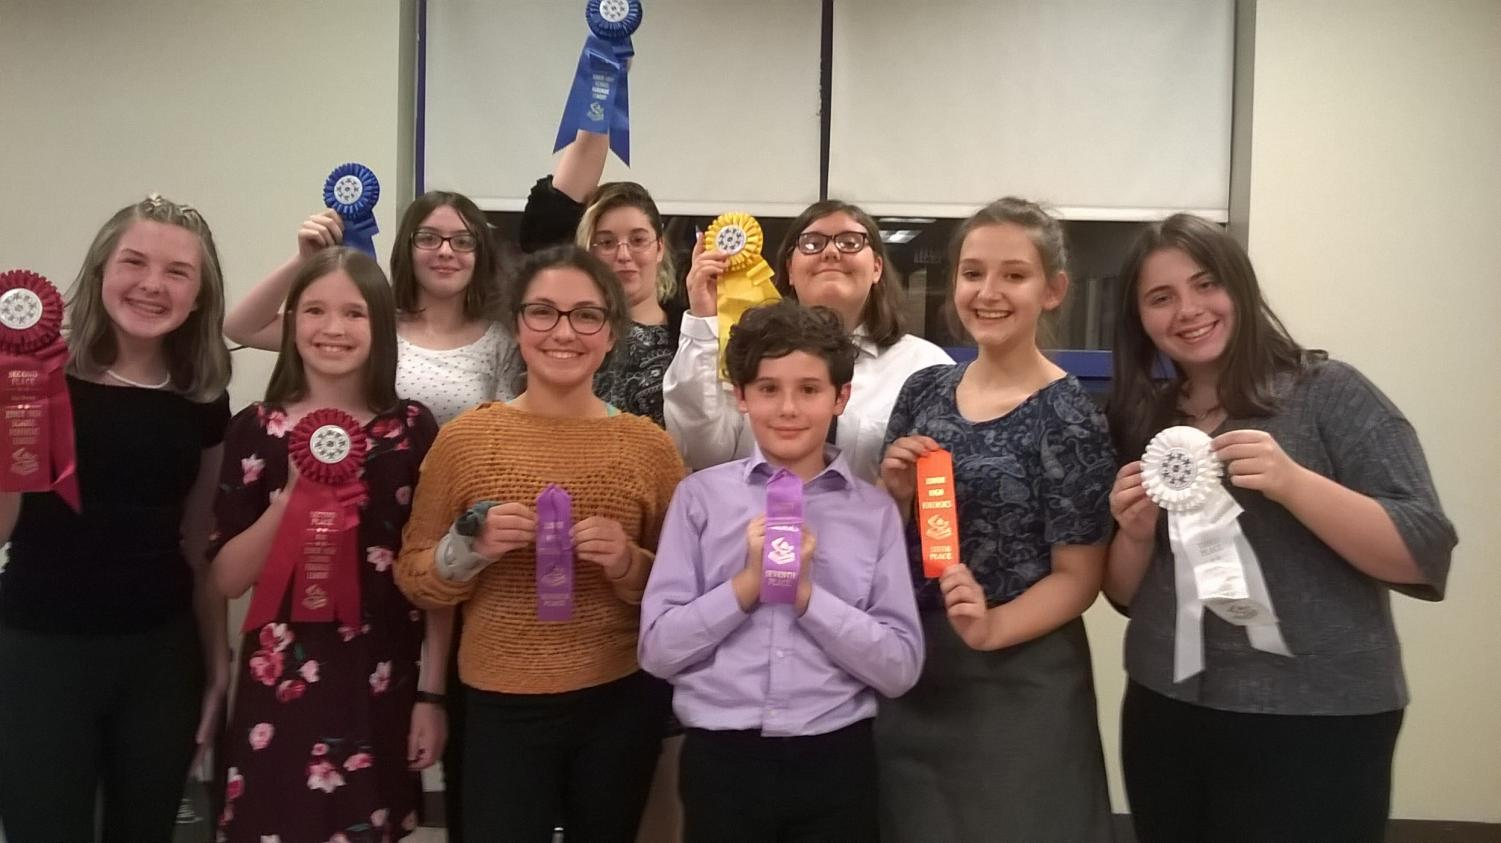 Junior high speech team members include, Front Row (l to r):  Trinity Riva, Emily Zacker, Trinity Maines, Derek Stivers, Halee Young, Jocelyn McGuire; Back Row:   Kate Wallace, Amber Chappell, Abi Eckenrod.